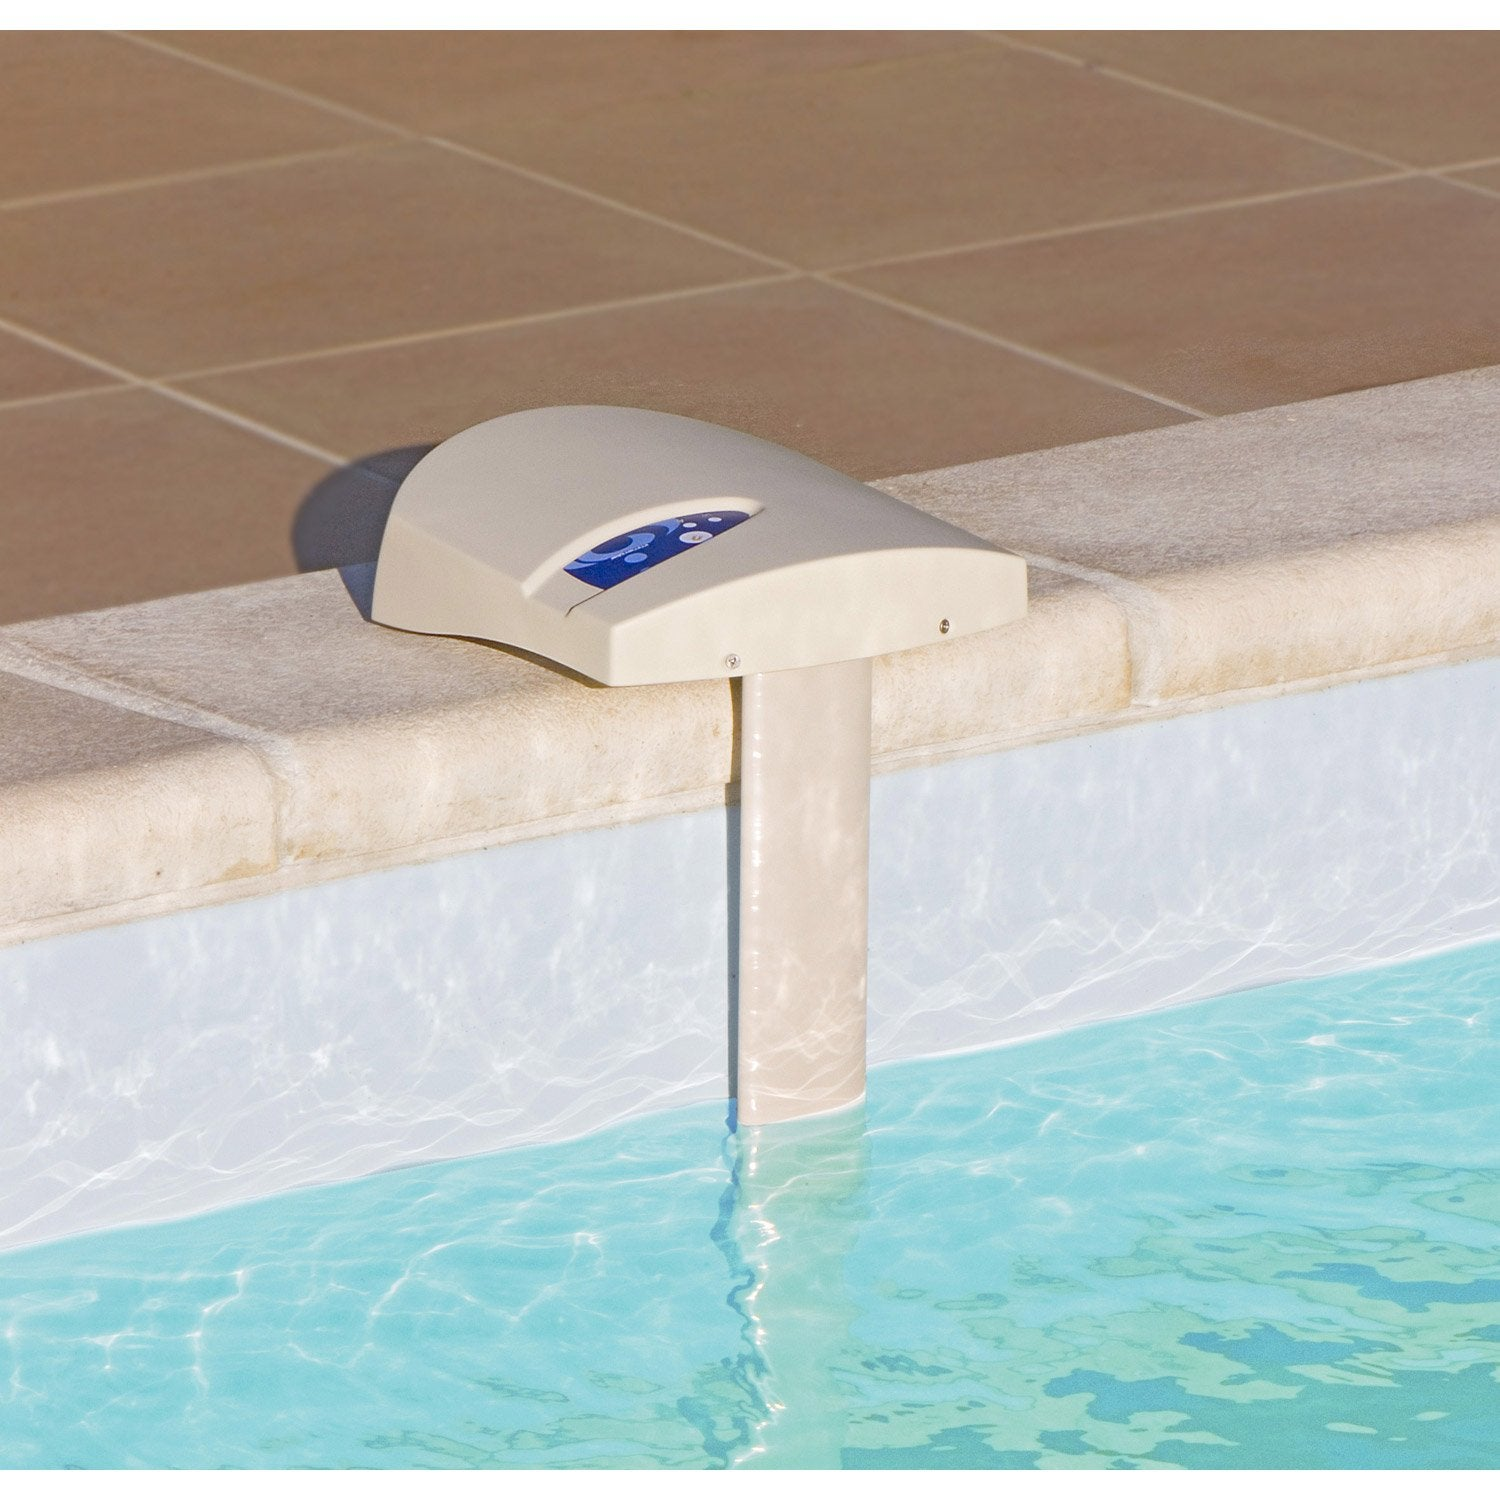 Kit alarme pour piscine enterr e a immersion visiopool 20m2 leroy merlin - Limpiafondos piscina leroy merlin ...